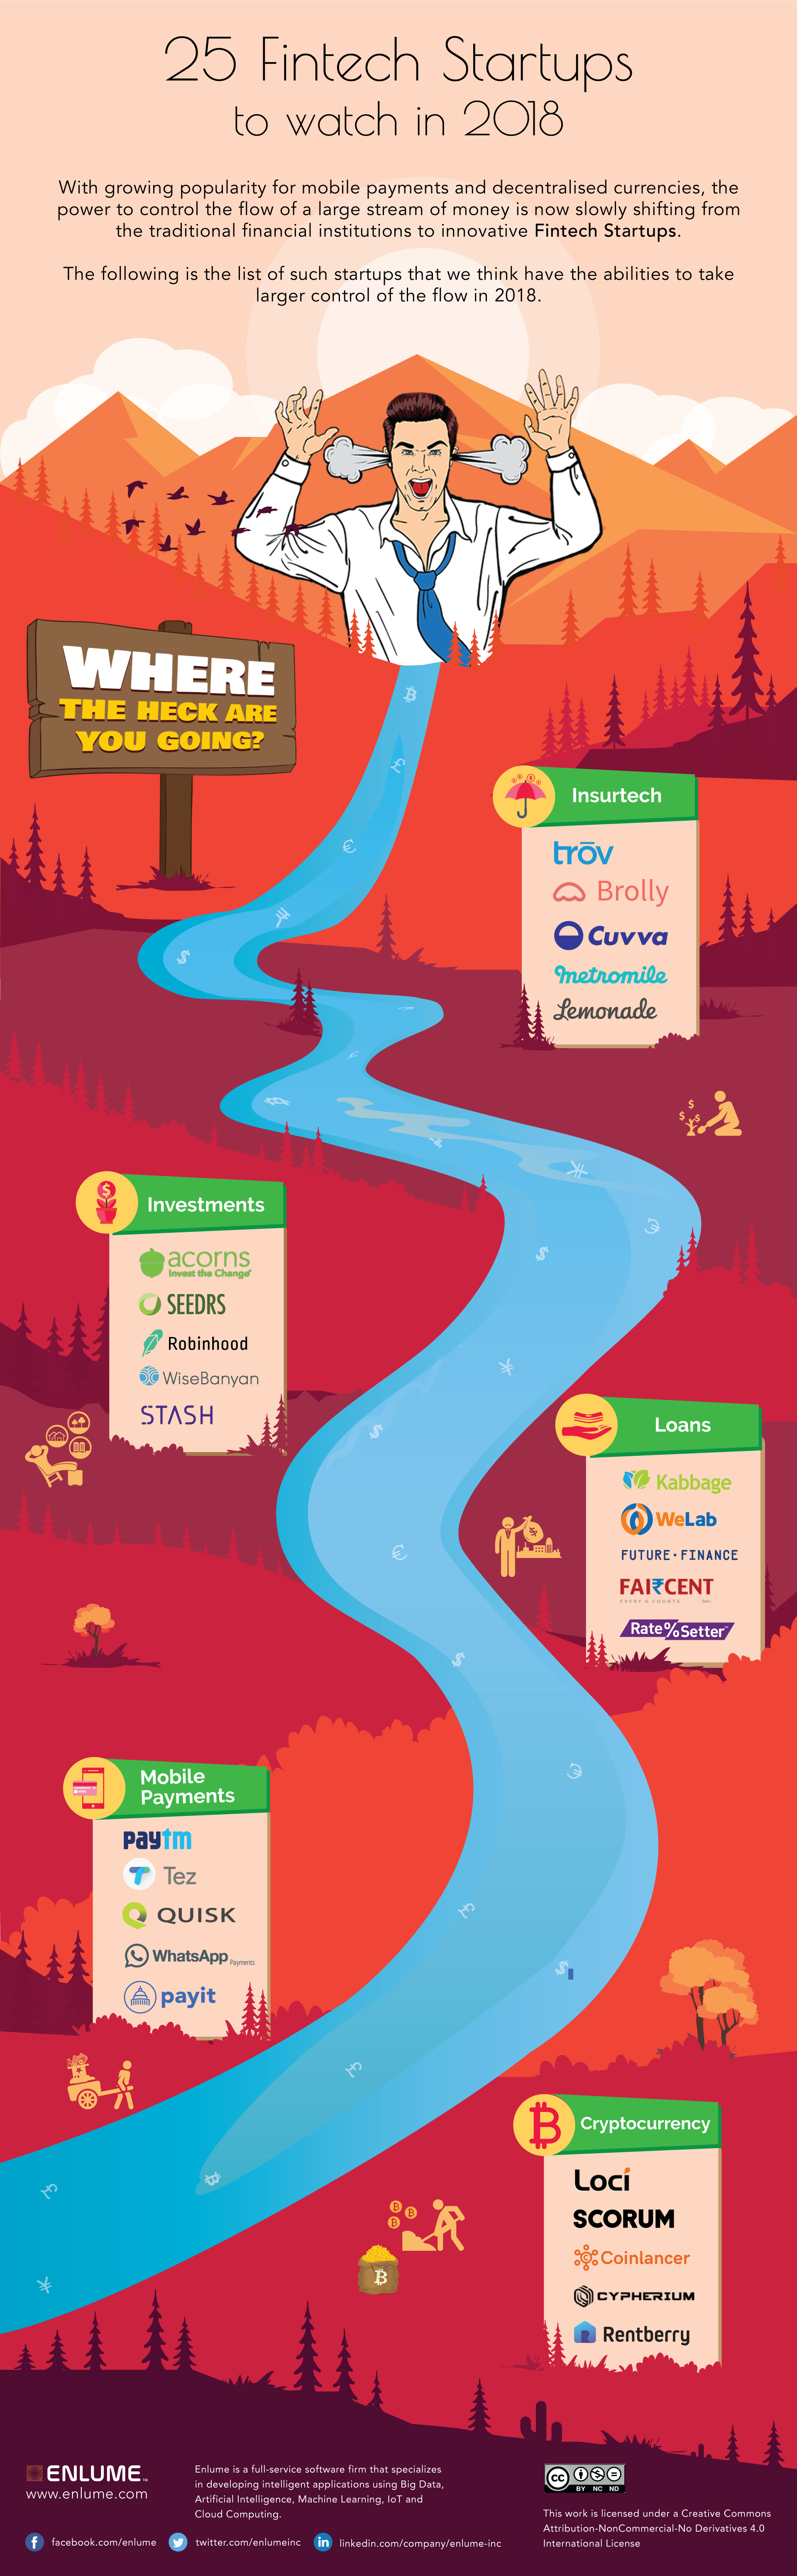 25-top-fintech-startups-to-watch-in-2018-infographic